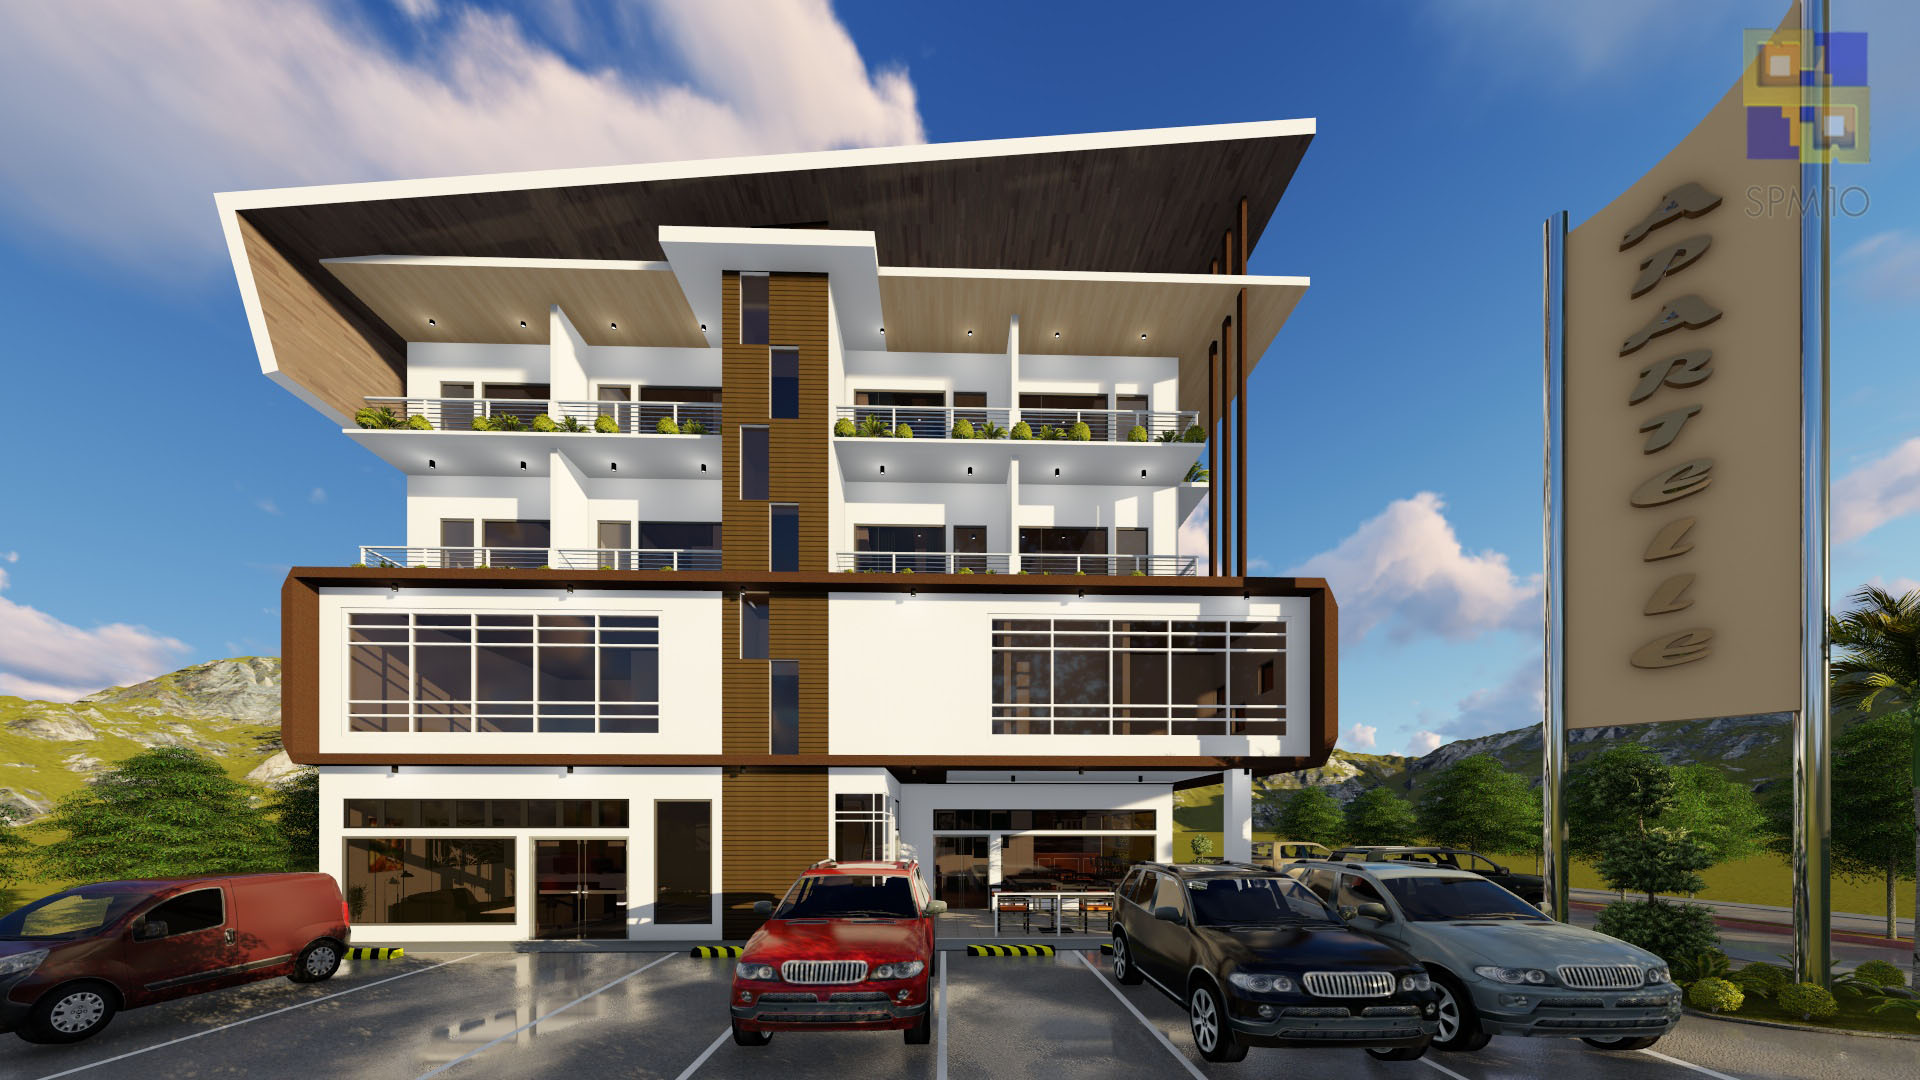 4 storey apartment with commercial units building concept for 4 story building design